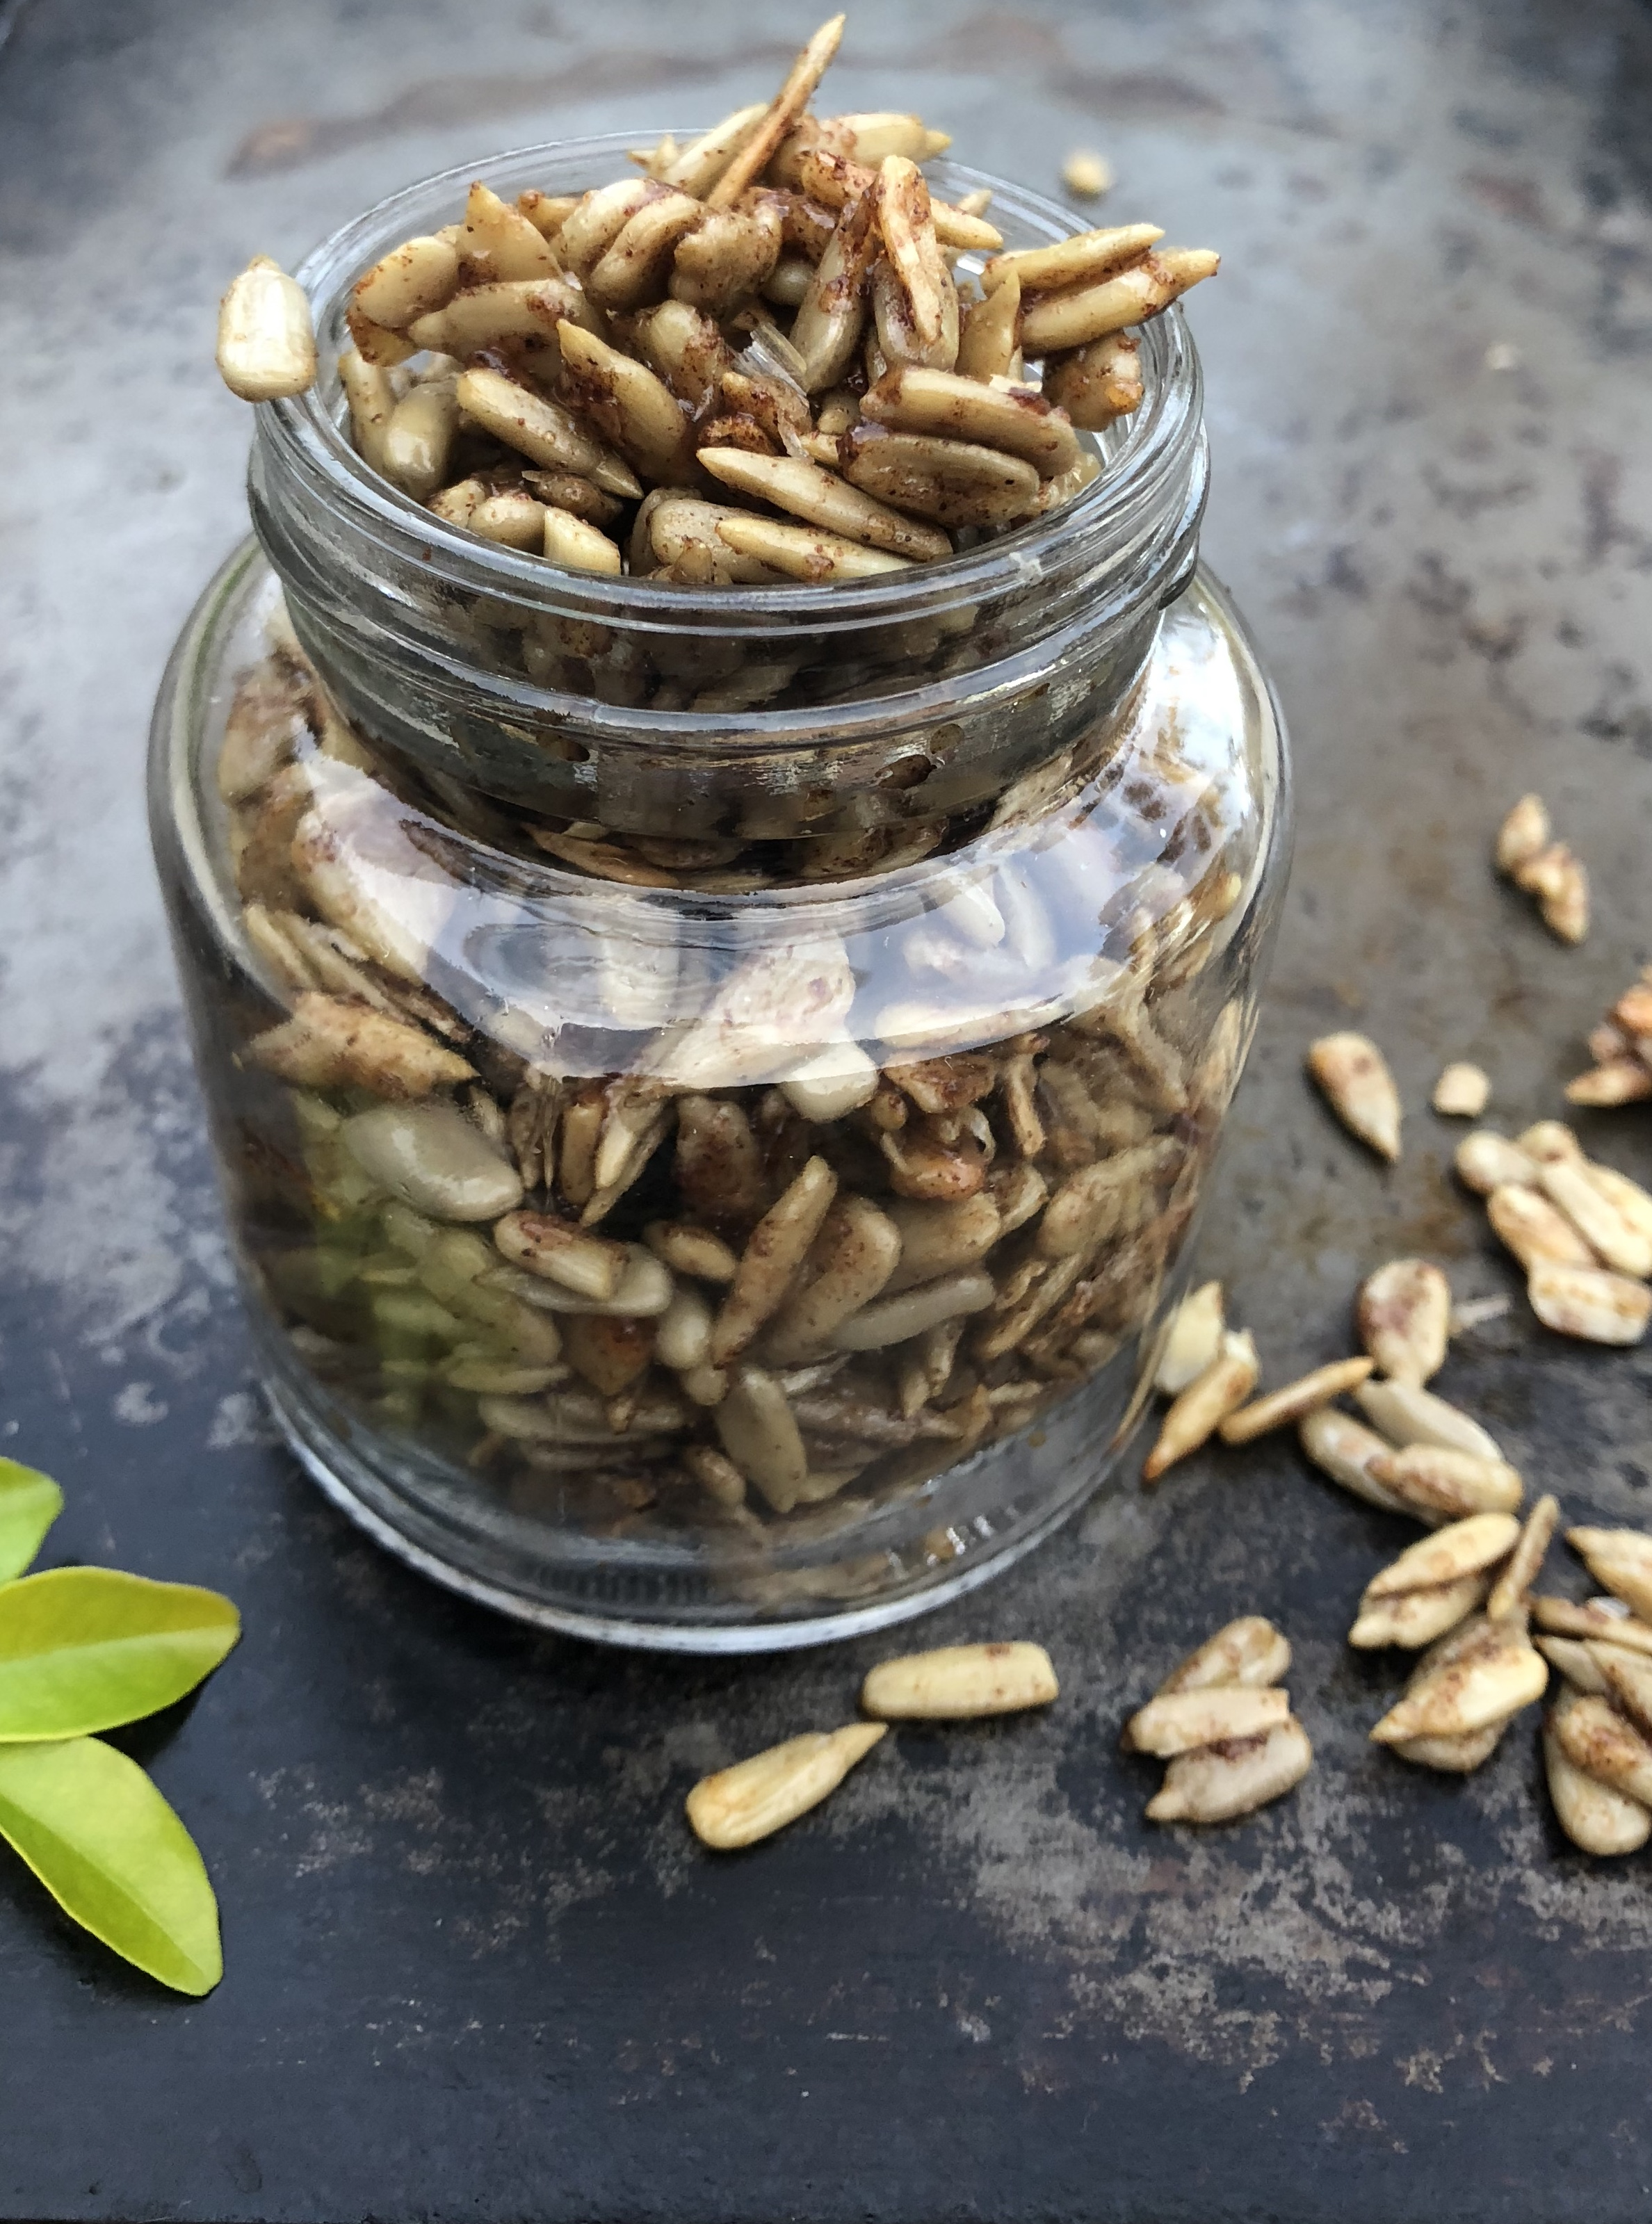 Melissa-Eaton-Eaton-Balanced-healthy-honey-cinnamon-sunflower-seeds.jpg